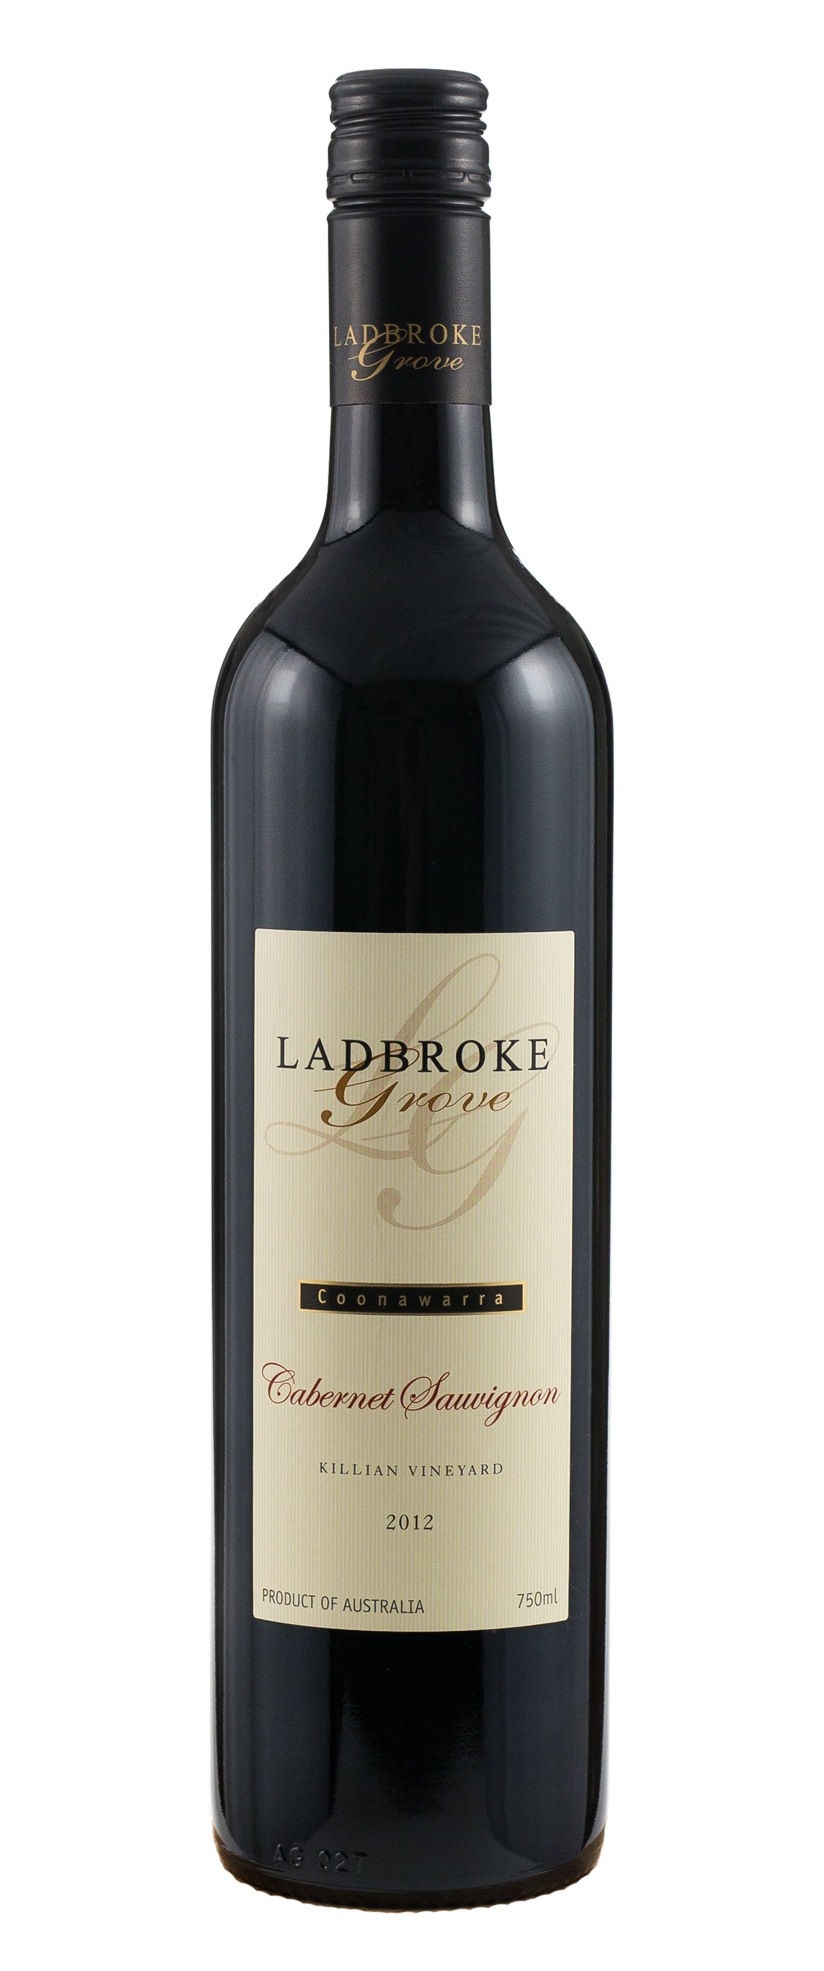 2012 Ladbroke Grove Cabernet Sauvignon Killian Vineyard